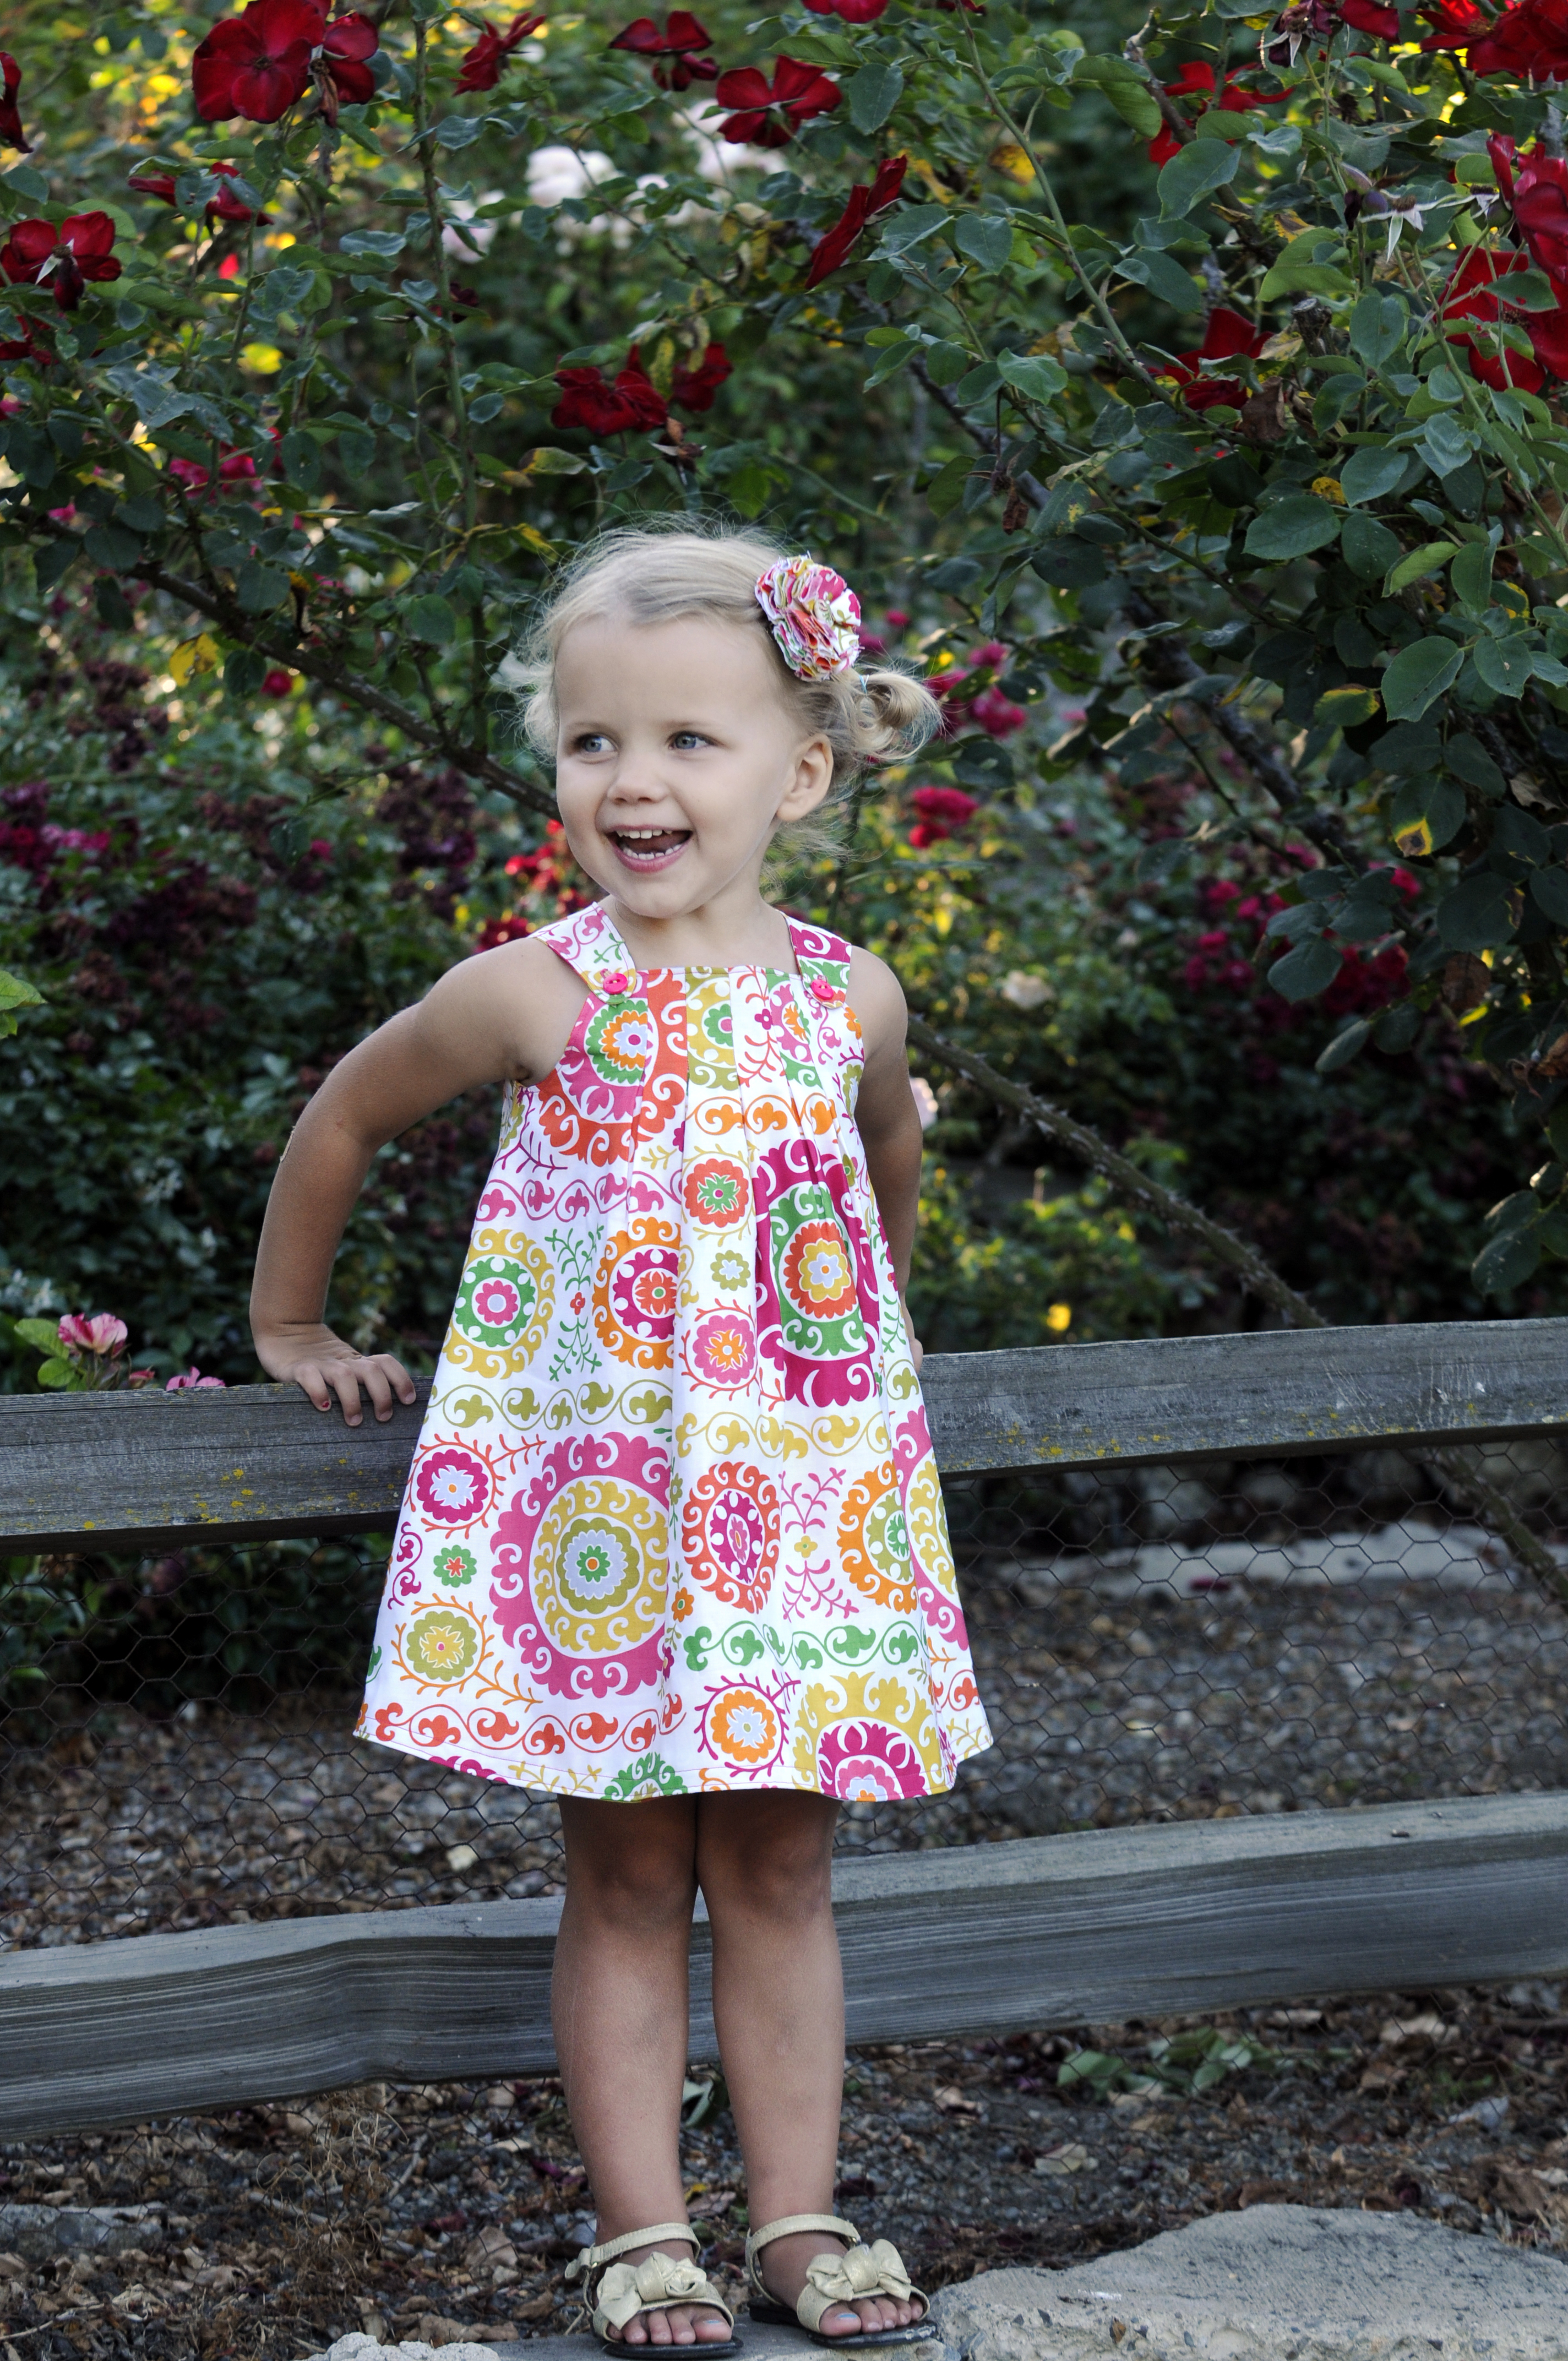 The Harper Dress from Sew Sweet Patterns